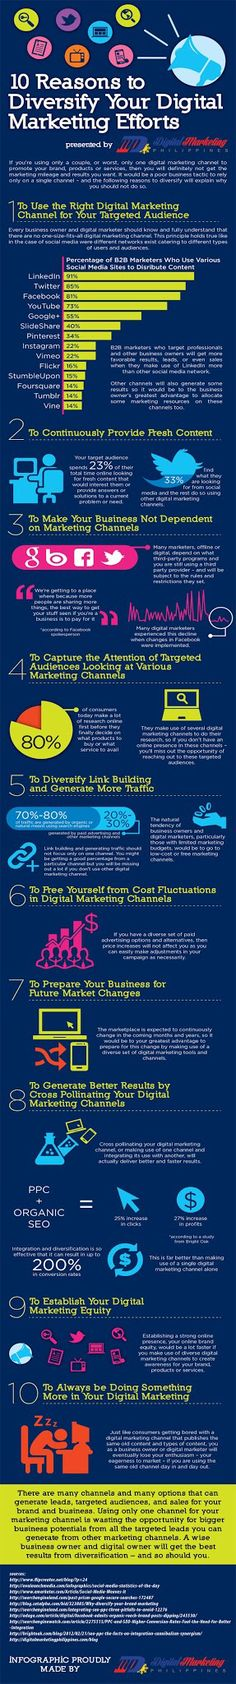 10 Reasons To Diversify Your Digital Marketing Efforts. #Infographic #Digital #Marketing http://www.helpmequitthe9to5.com #internetmarketing internet marketing tips and tricks